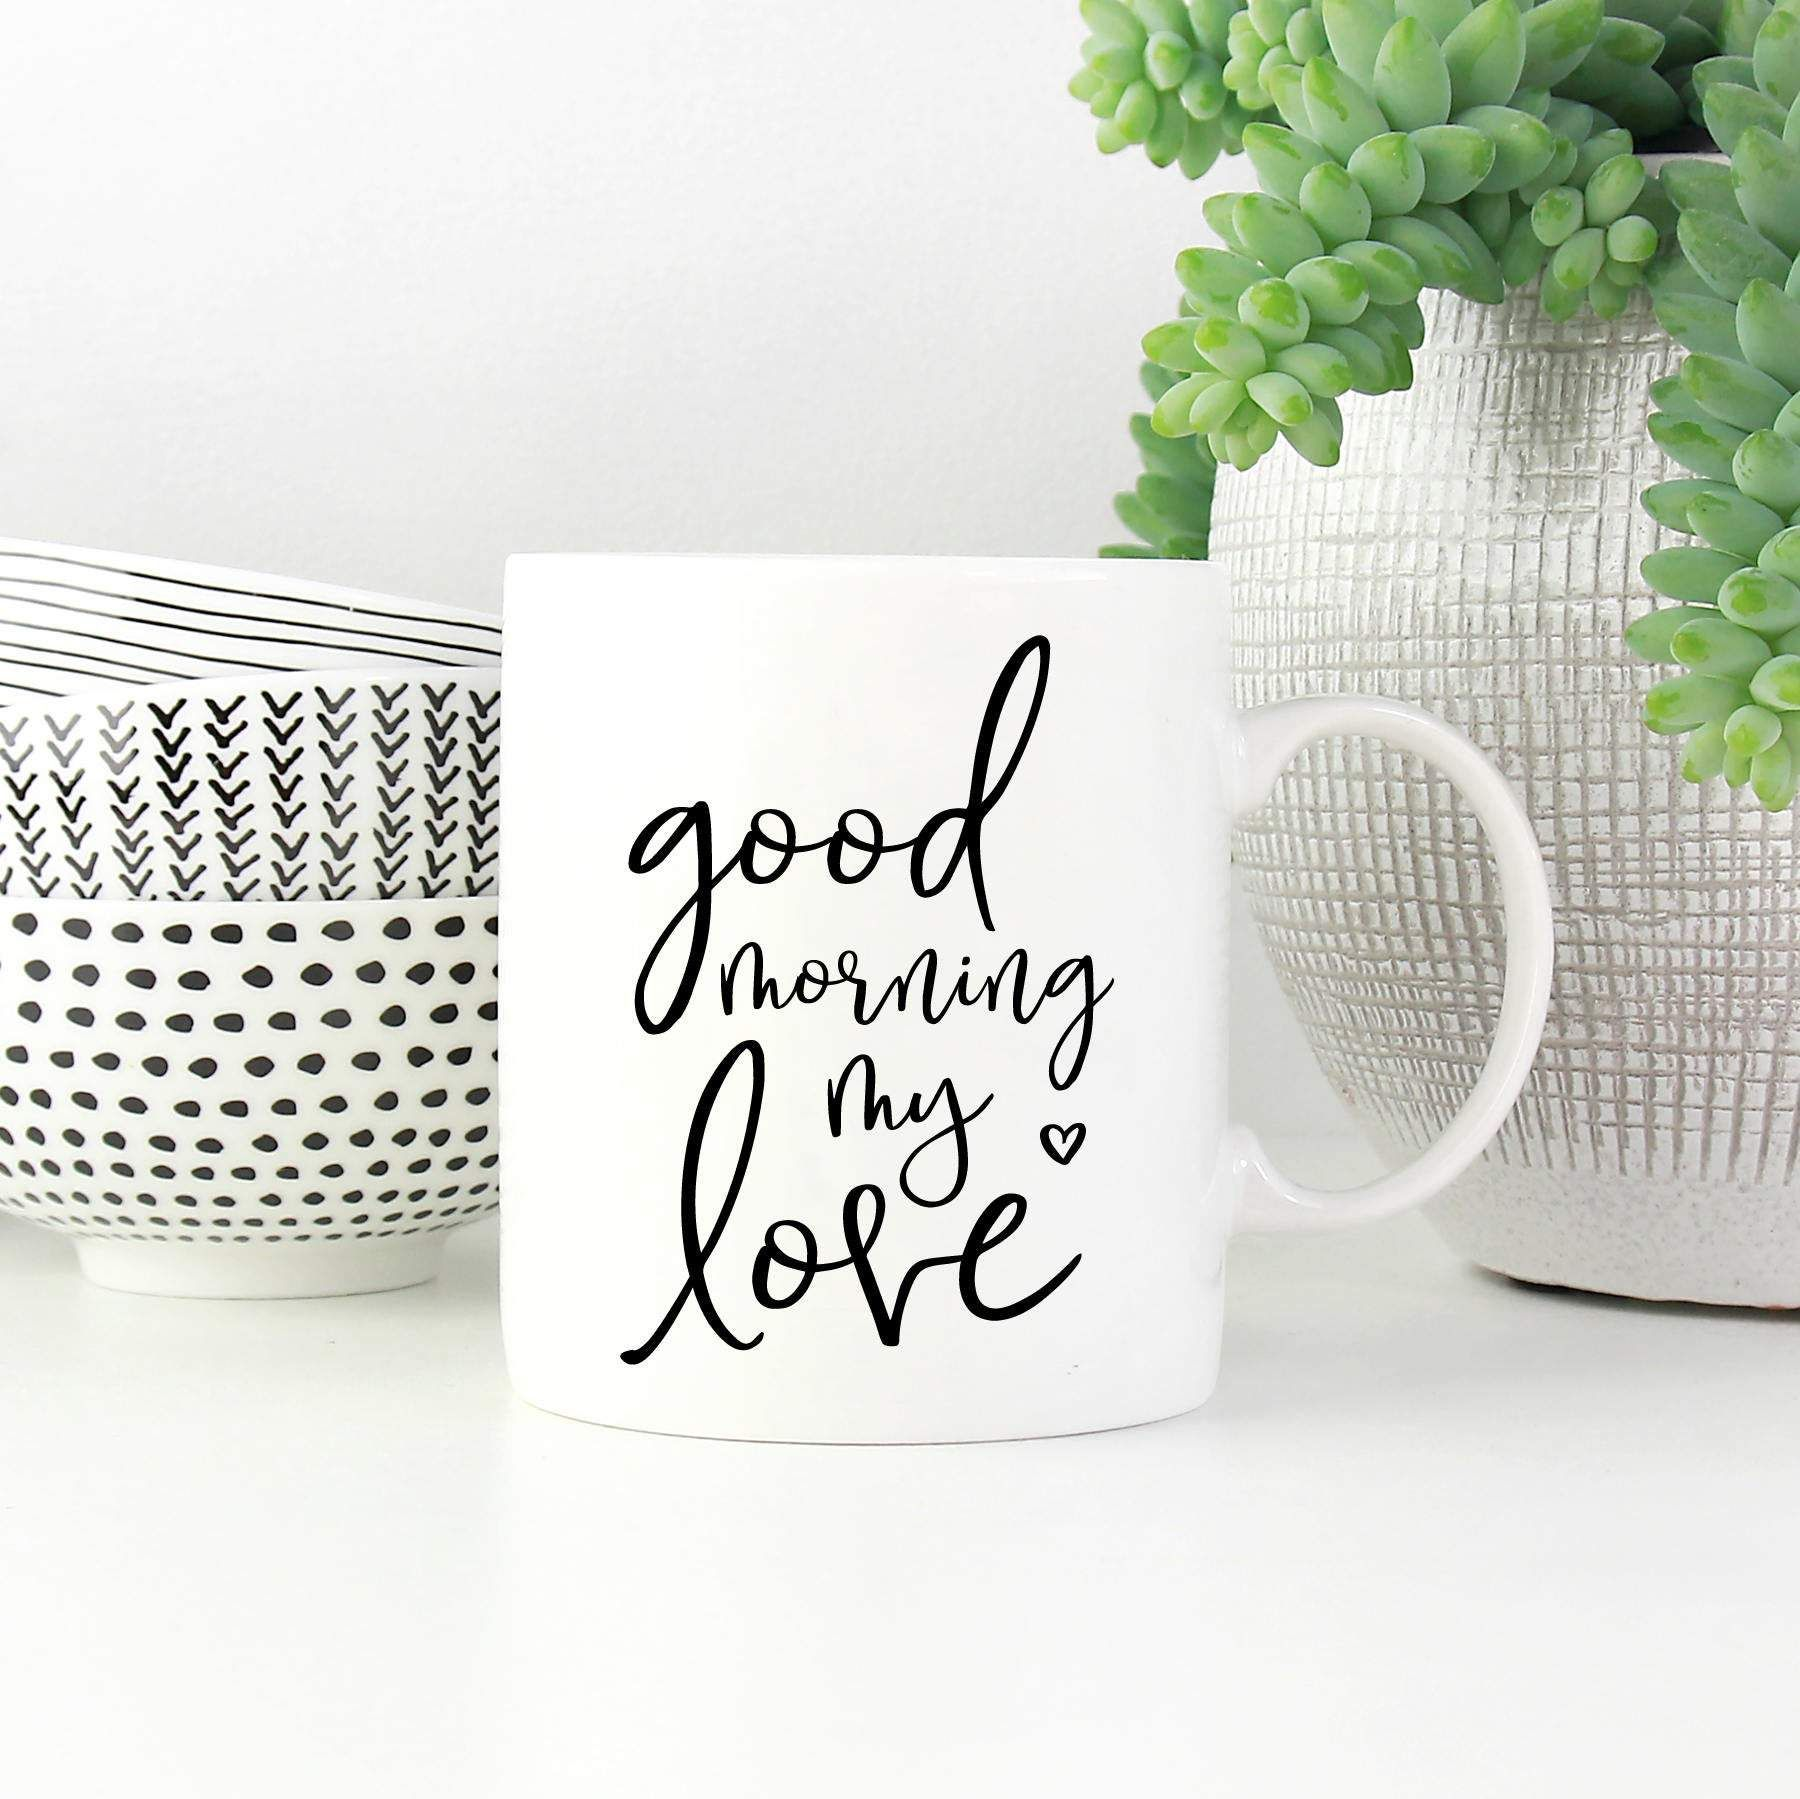 This listing is for one white, high quality Ceramic mug. Please note: due to variations in computer monitor configuration, colors may vary slightly MUG DETAILS: > This listing is for 1 mug > Ceramic > Dishwasher safe > Microwave safe > Available in 11 oz and 15 oz sizes > White, glossy > Carefully wrapped Please allow up to 2-7 business days for production and printing of your item, prior to shipment. I will send you a tracking number when your mug ships. All mugs are sent i